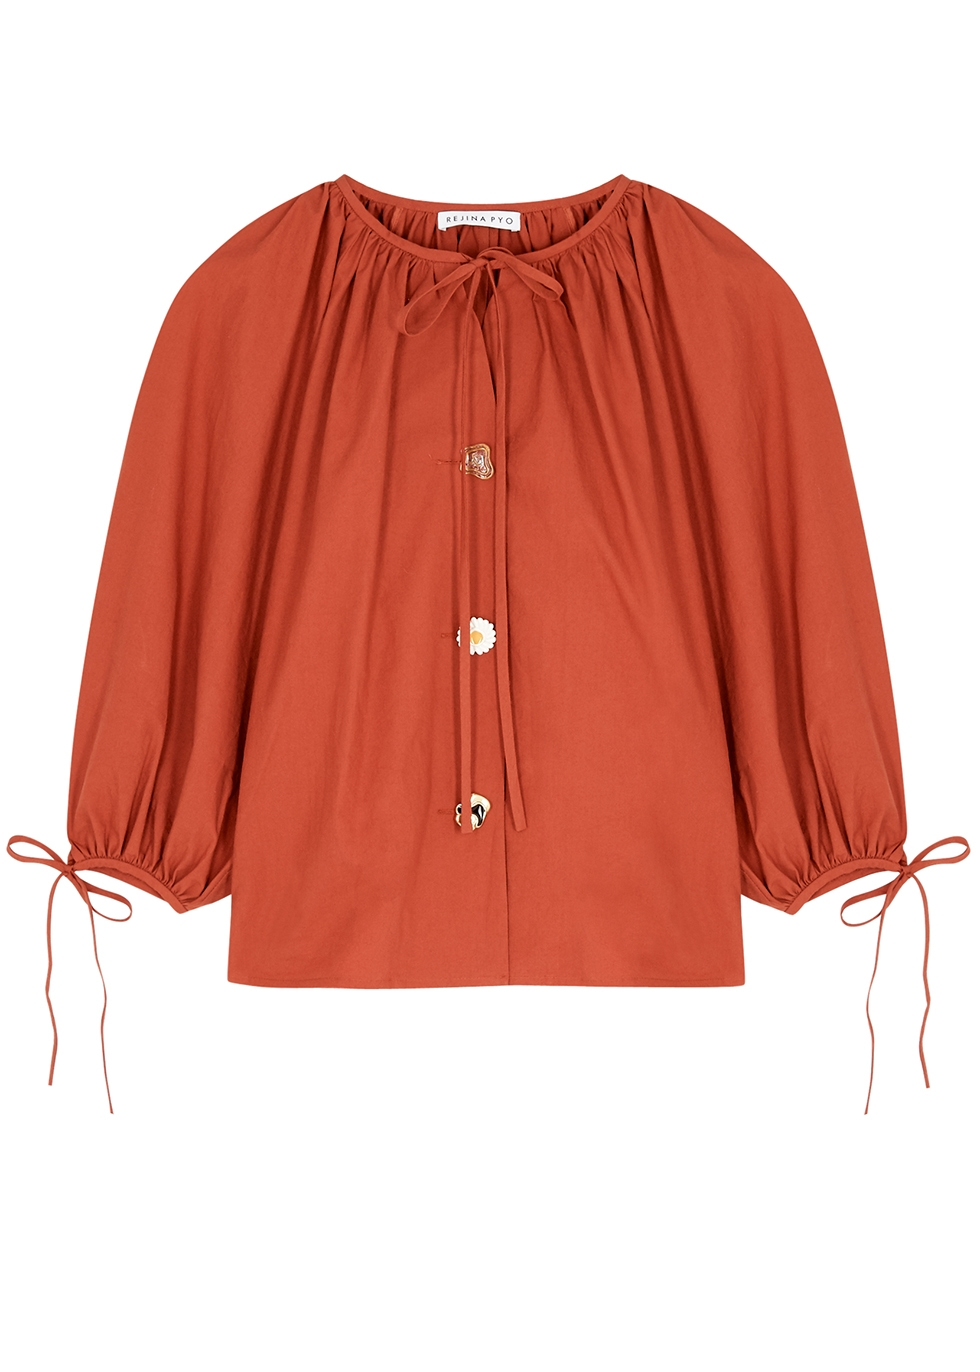 Rejina Pyo SCOUT TERRACOTTA COTTON BLOUSE